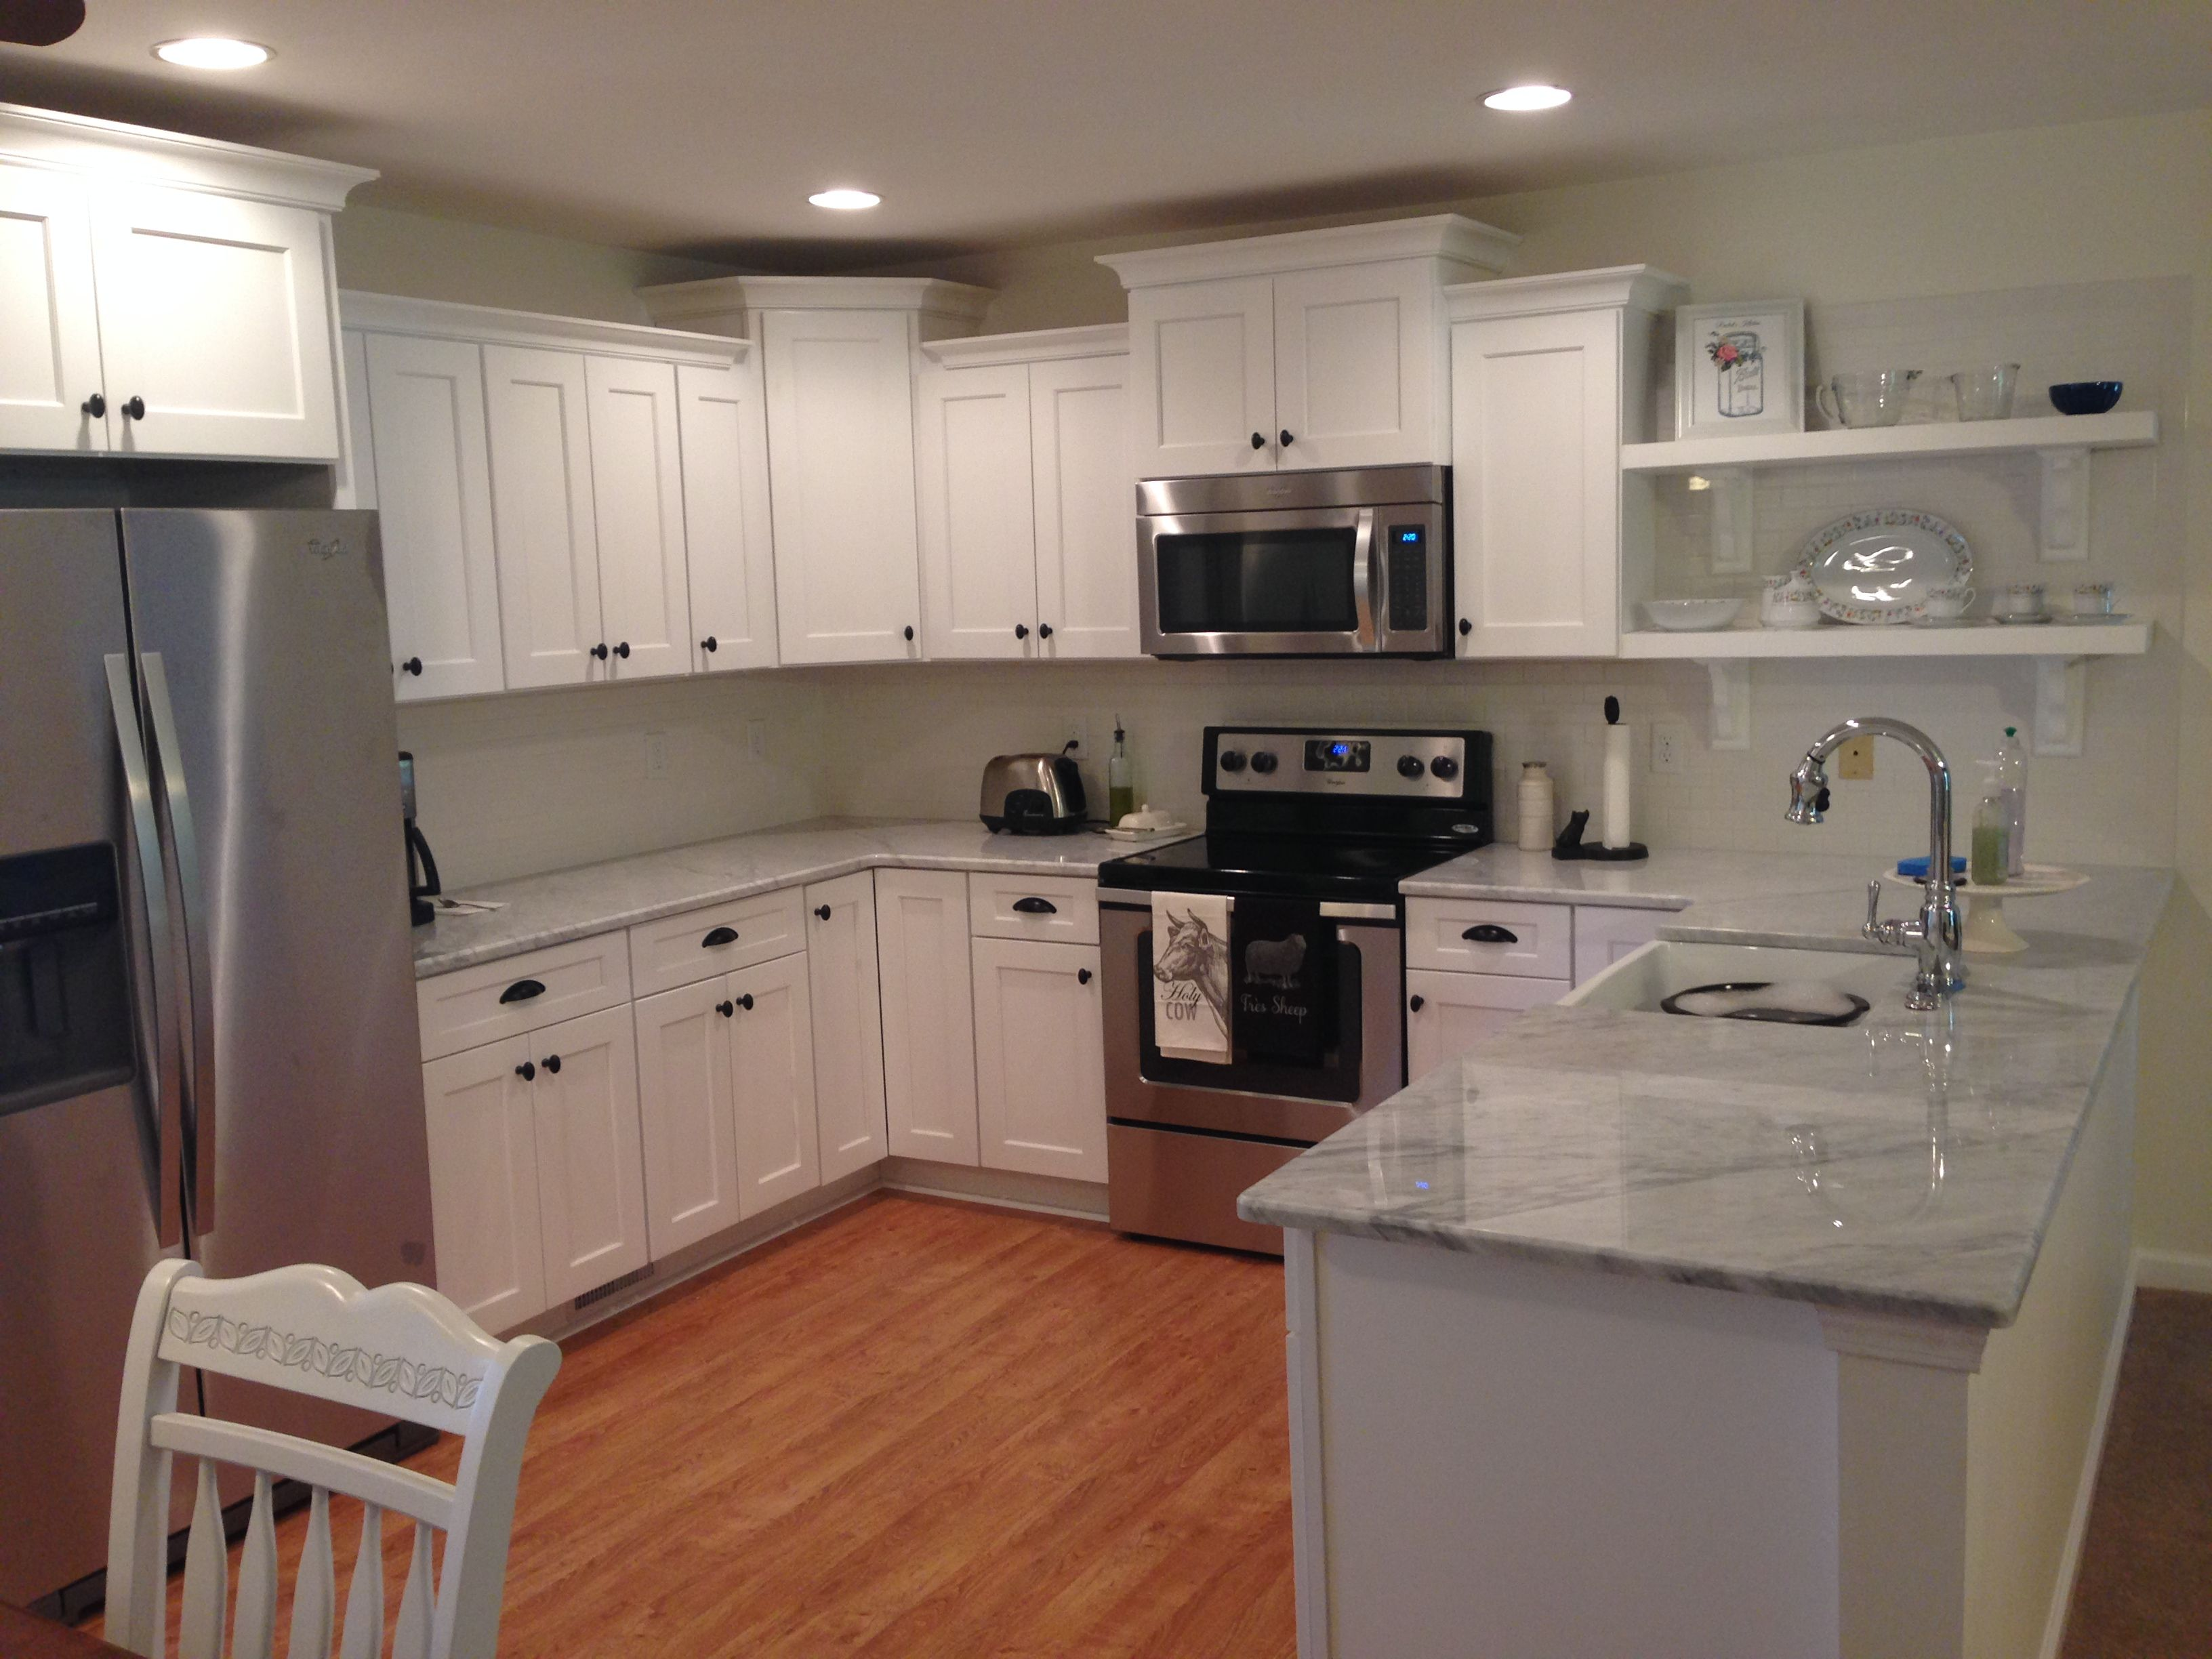 Shaker Style Kitchen Cabinets White Carrara Marble Counter Tops